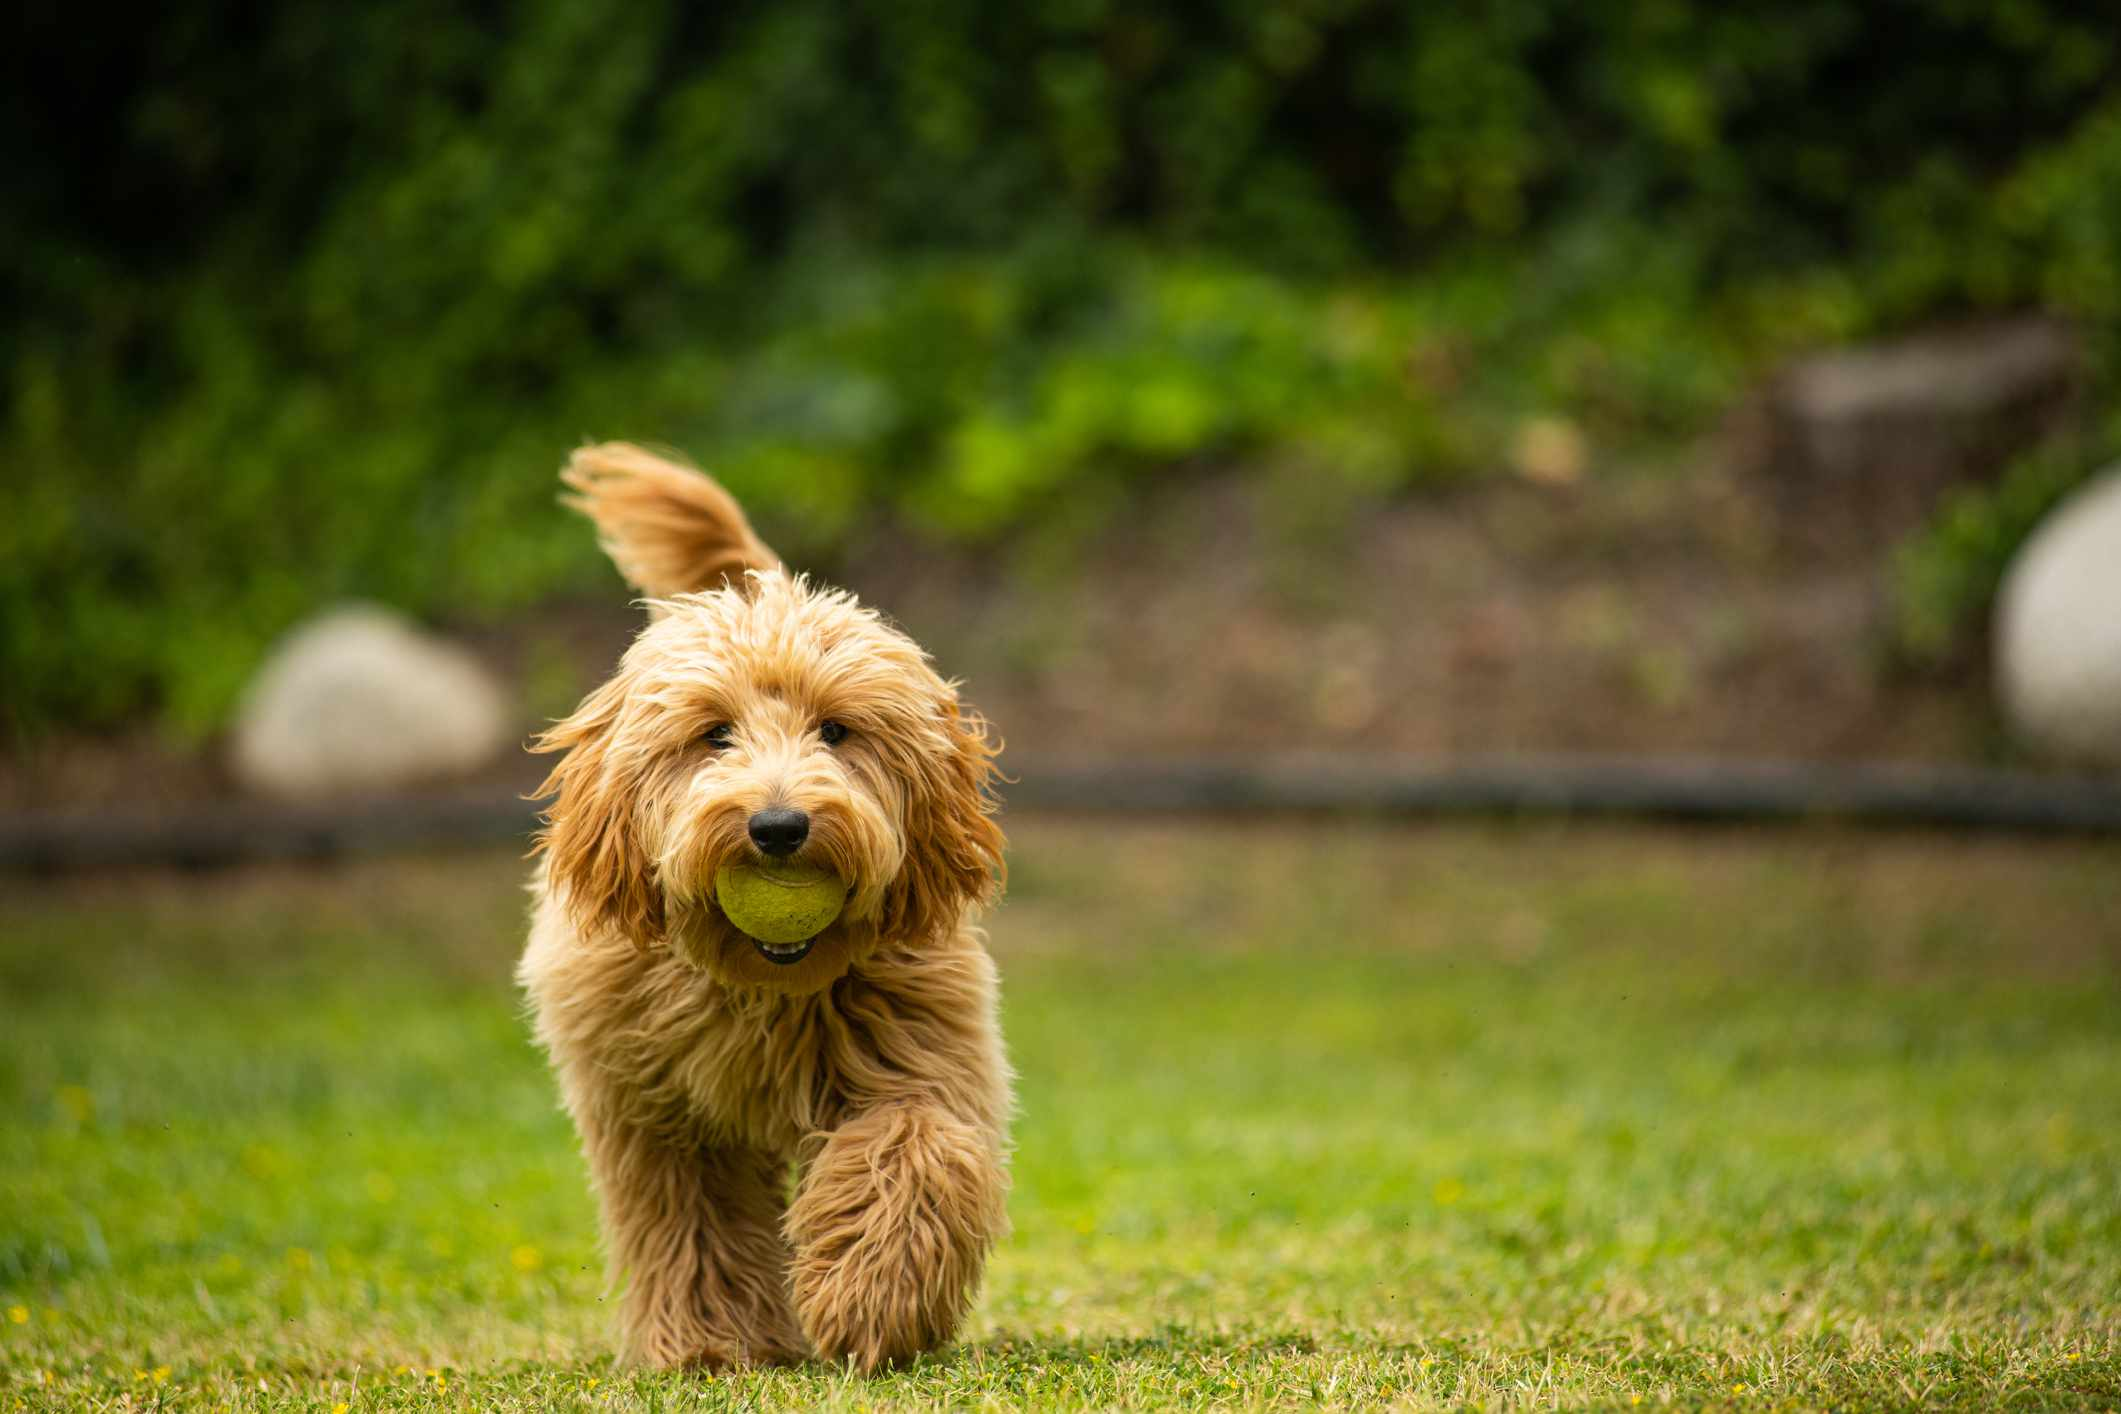 miniature golden doodle puppy with a tennis ball in its mouth